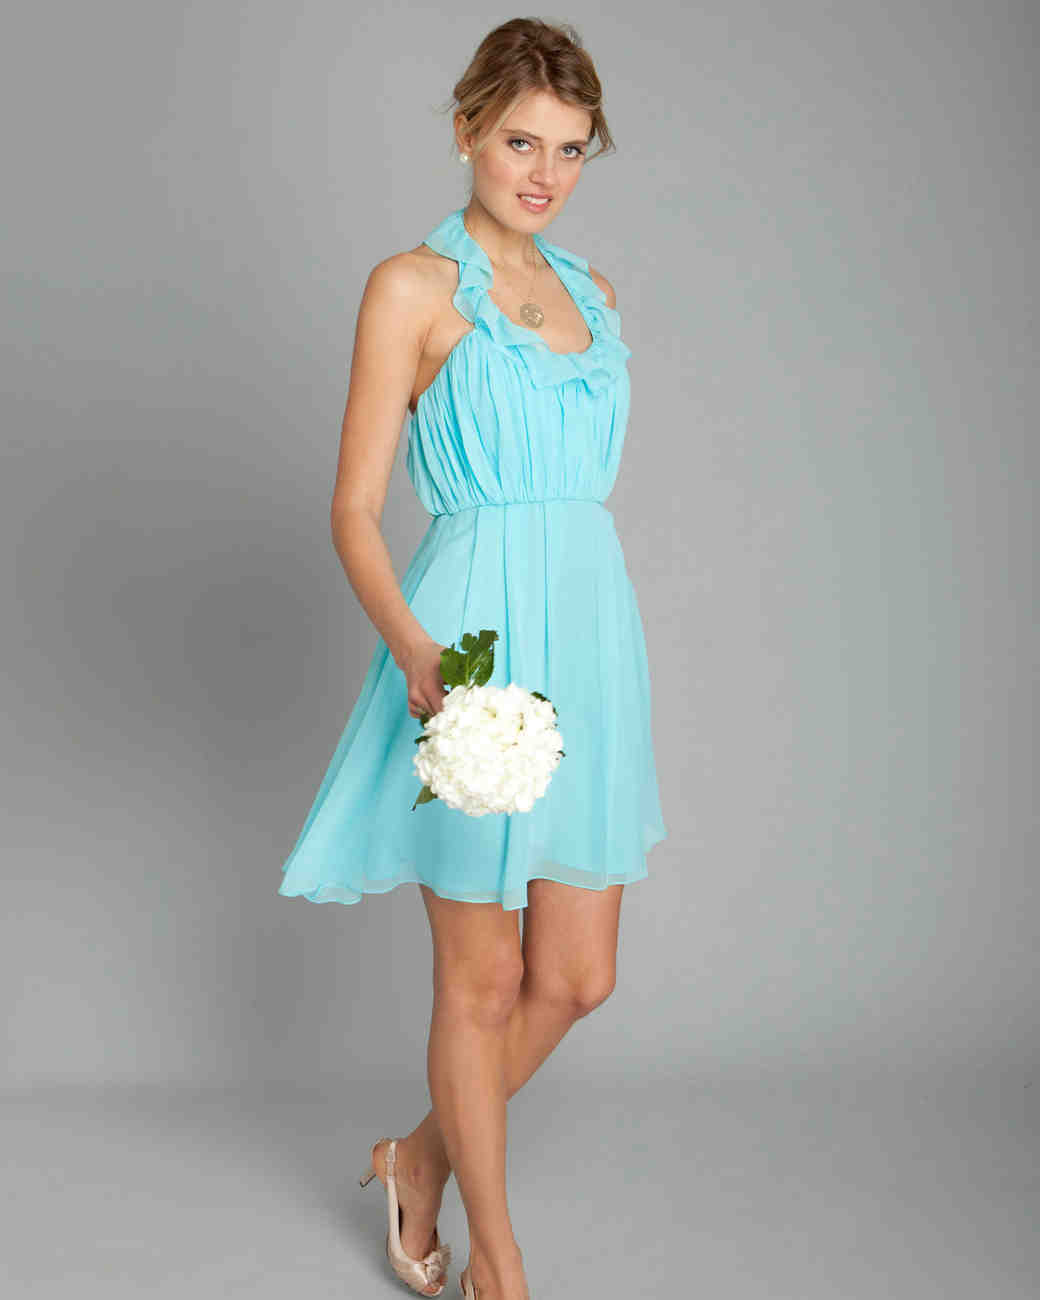 Blue and green bridesmaid dresses martha stewart weddings blue bridesmaid dresses ombrellifo Gallery